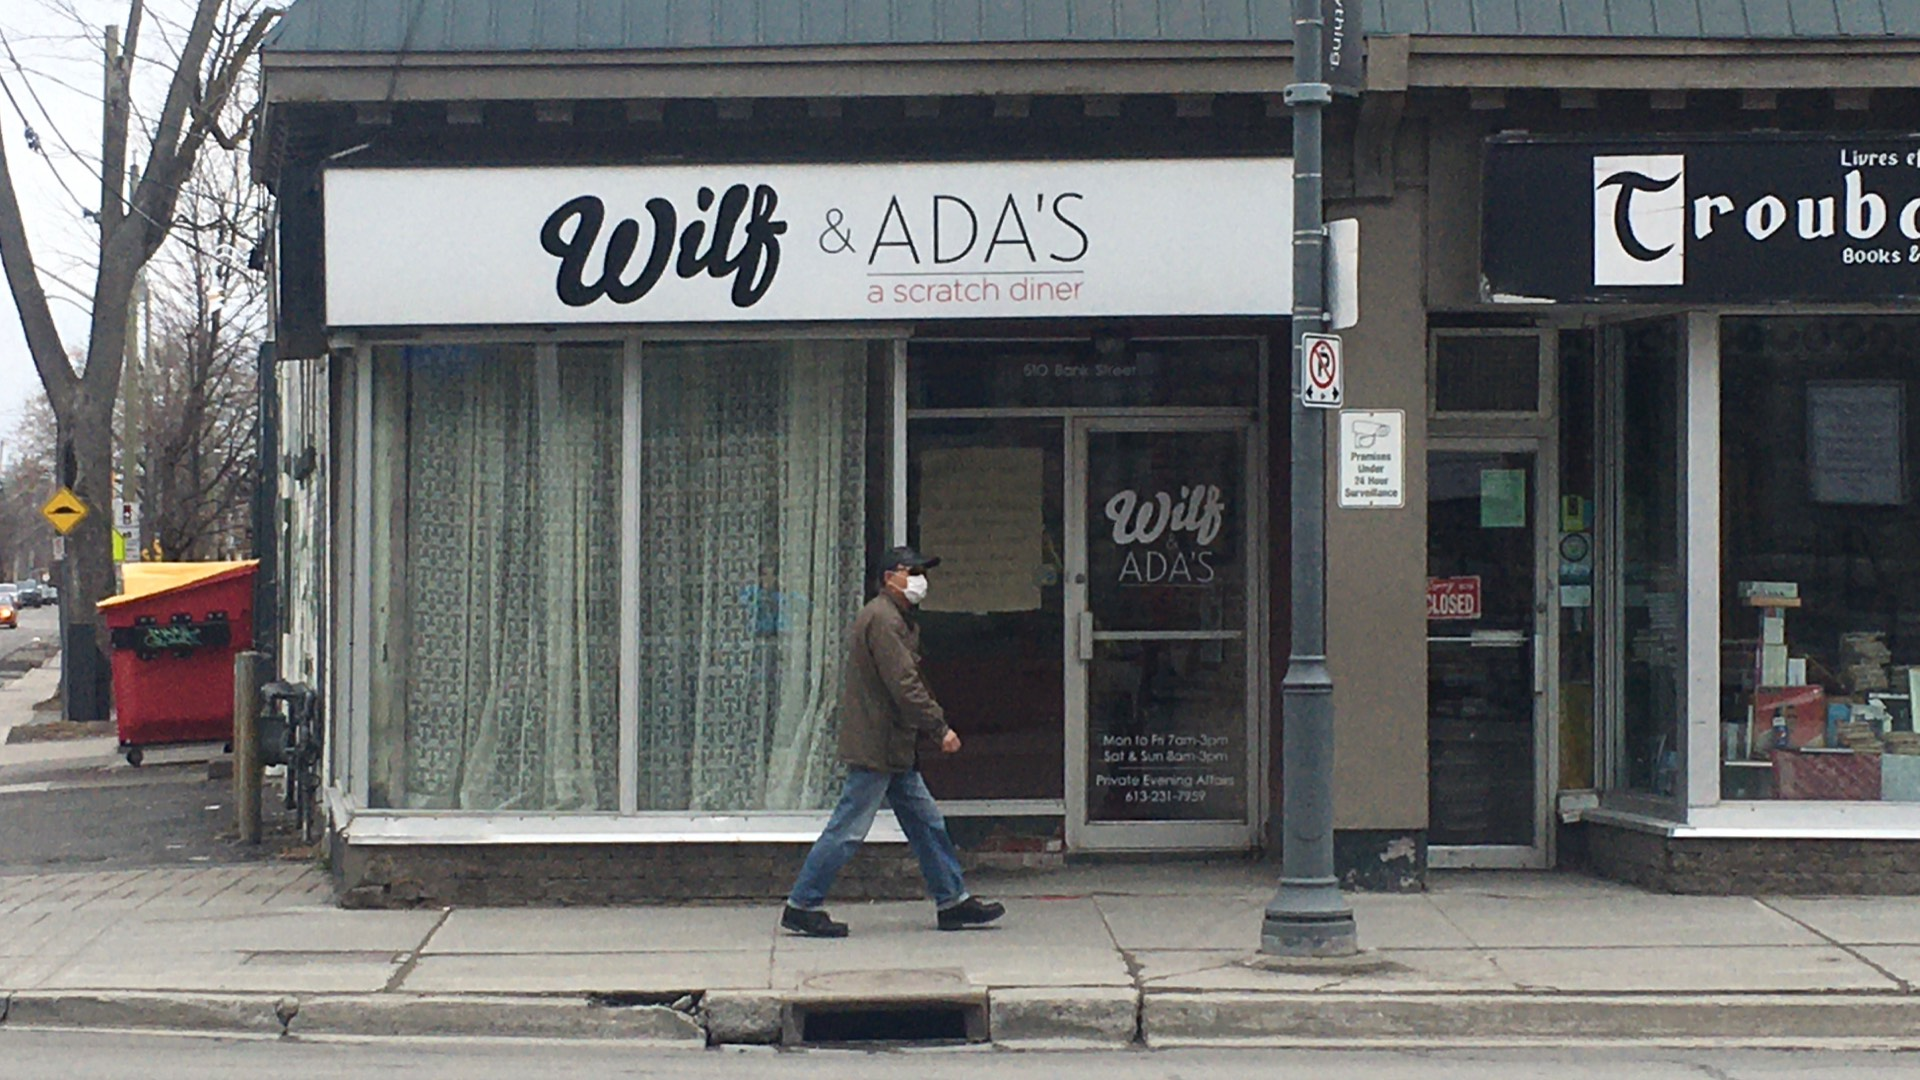 A man wearing a face mask walks past Wilf & Ada's on Bank Street. The restaurant has closed because of the COVID-19 pandemic. (Photo © Menaka Raman-Wilms)